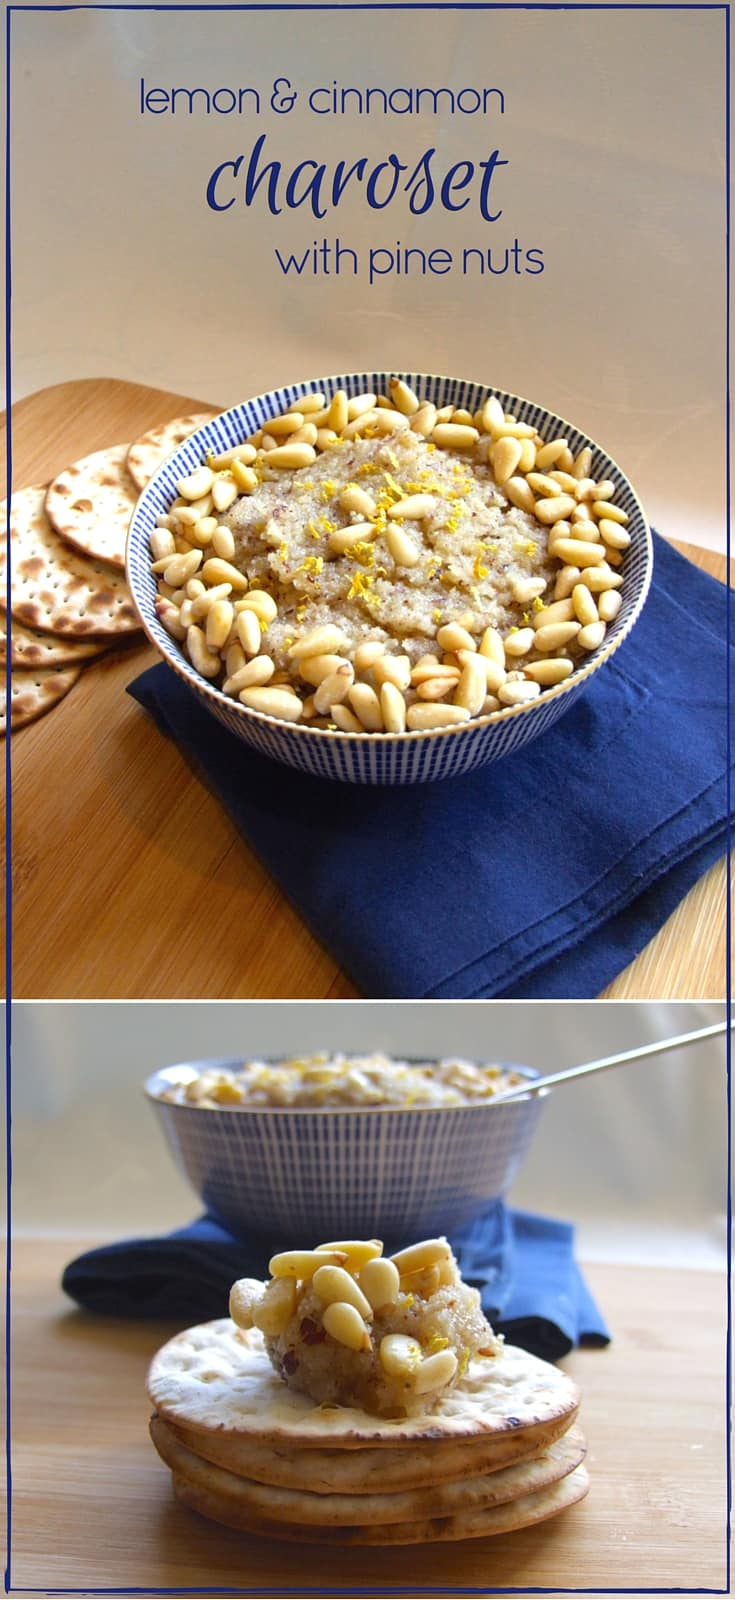 Incredible lemon & cinnamon charoset with pine nuts! An unbelievably delicious combination of nuts, lemon, cinnamon and apple - from North Africa via Italy. This charoset will revolutionise your seder!